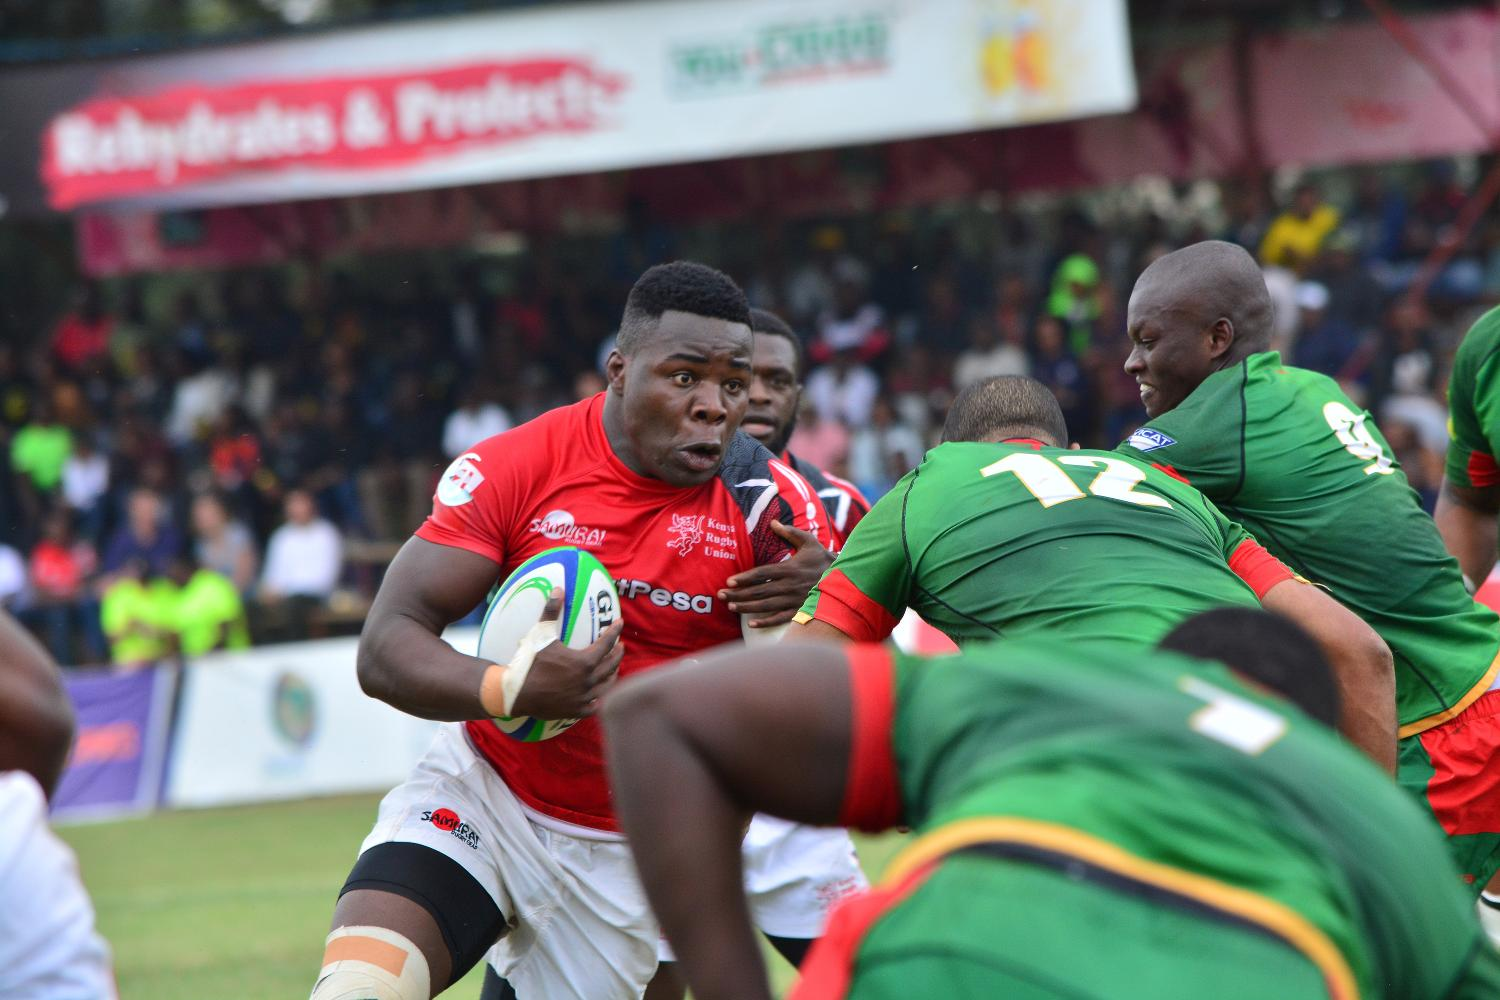 Rugby Africa Gold Cup 2017